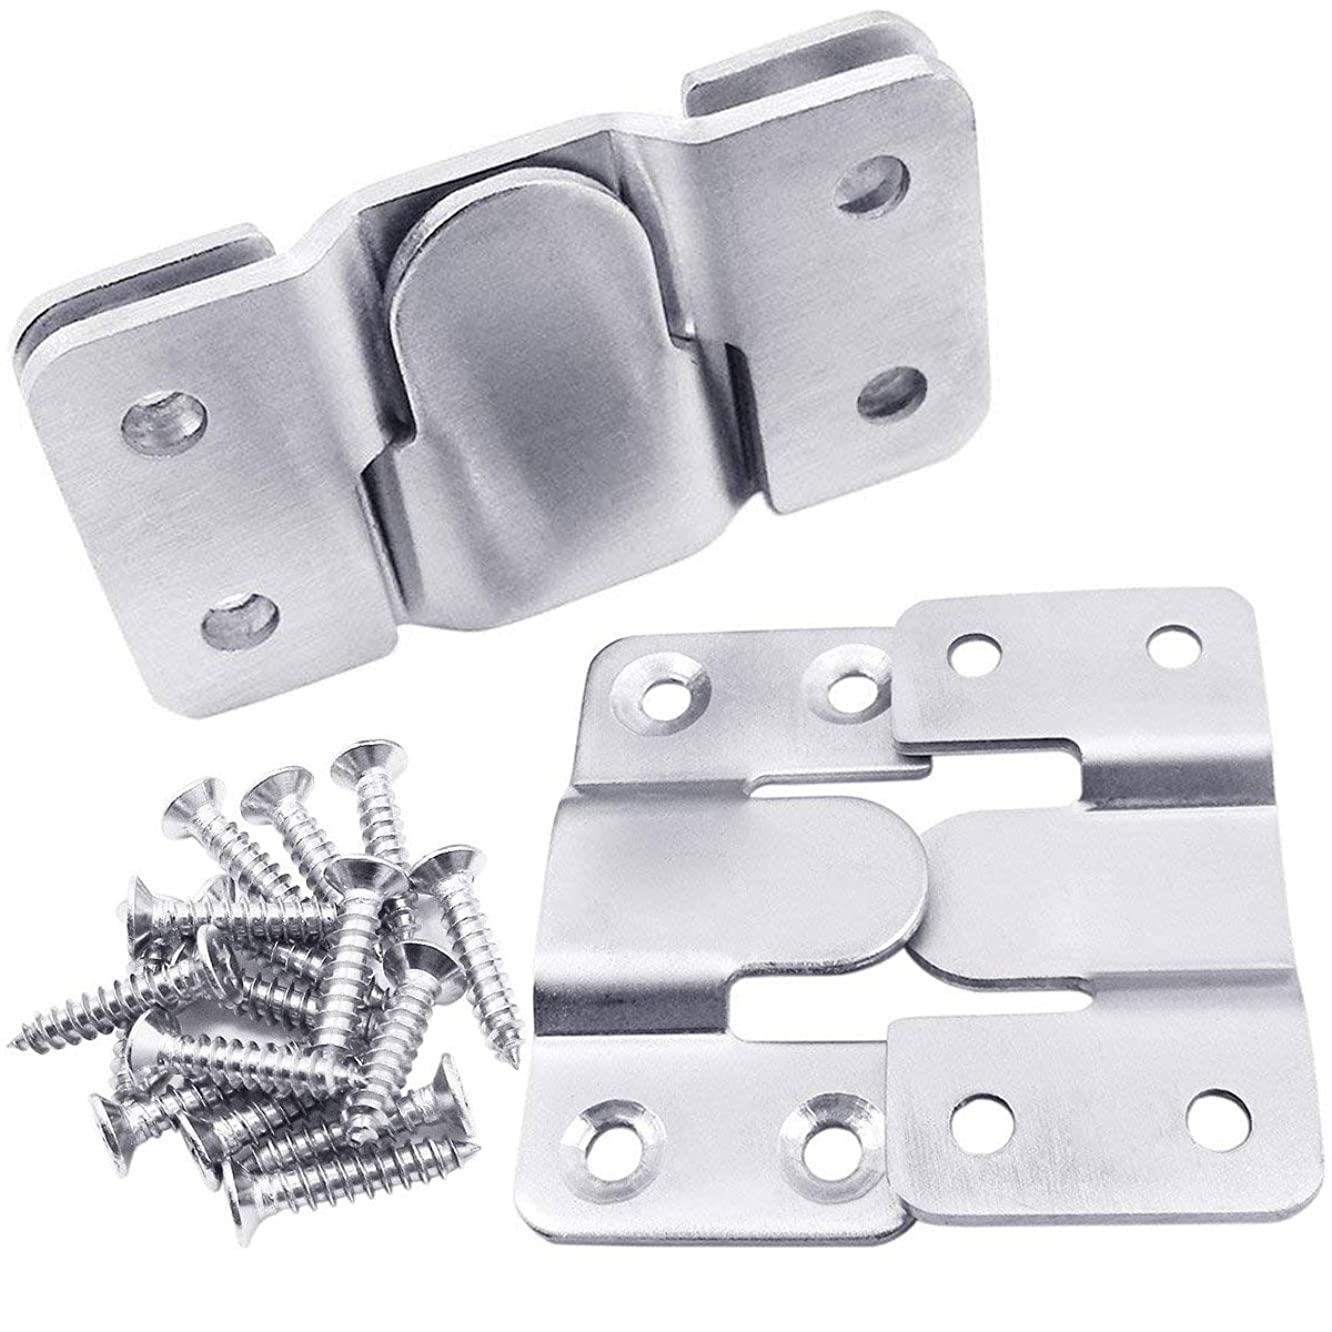 QY 4PCS 54MM Interlocking Flushmount 304 Stainless Steel Photo Frame Wall Mount Hooks for Large Picture Display Hanger Art Gallery Heavy Duty Clip